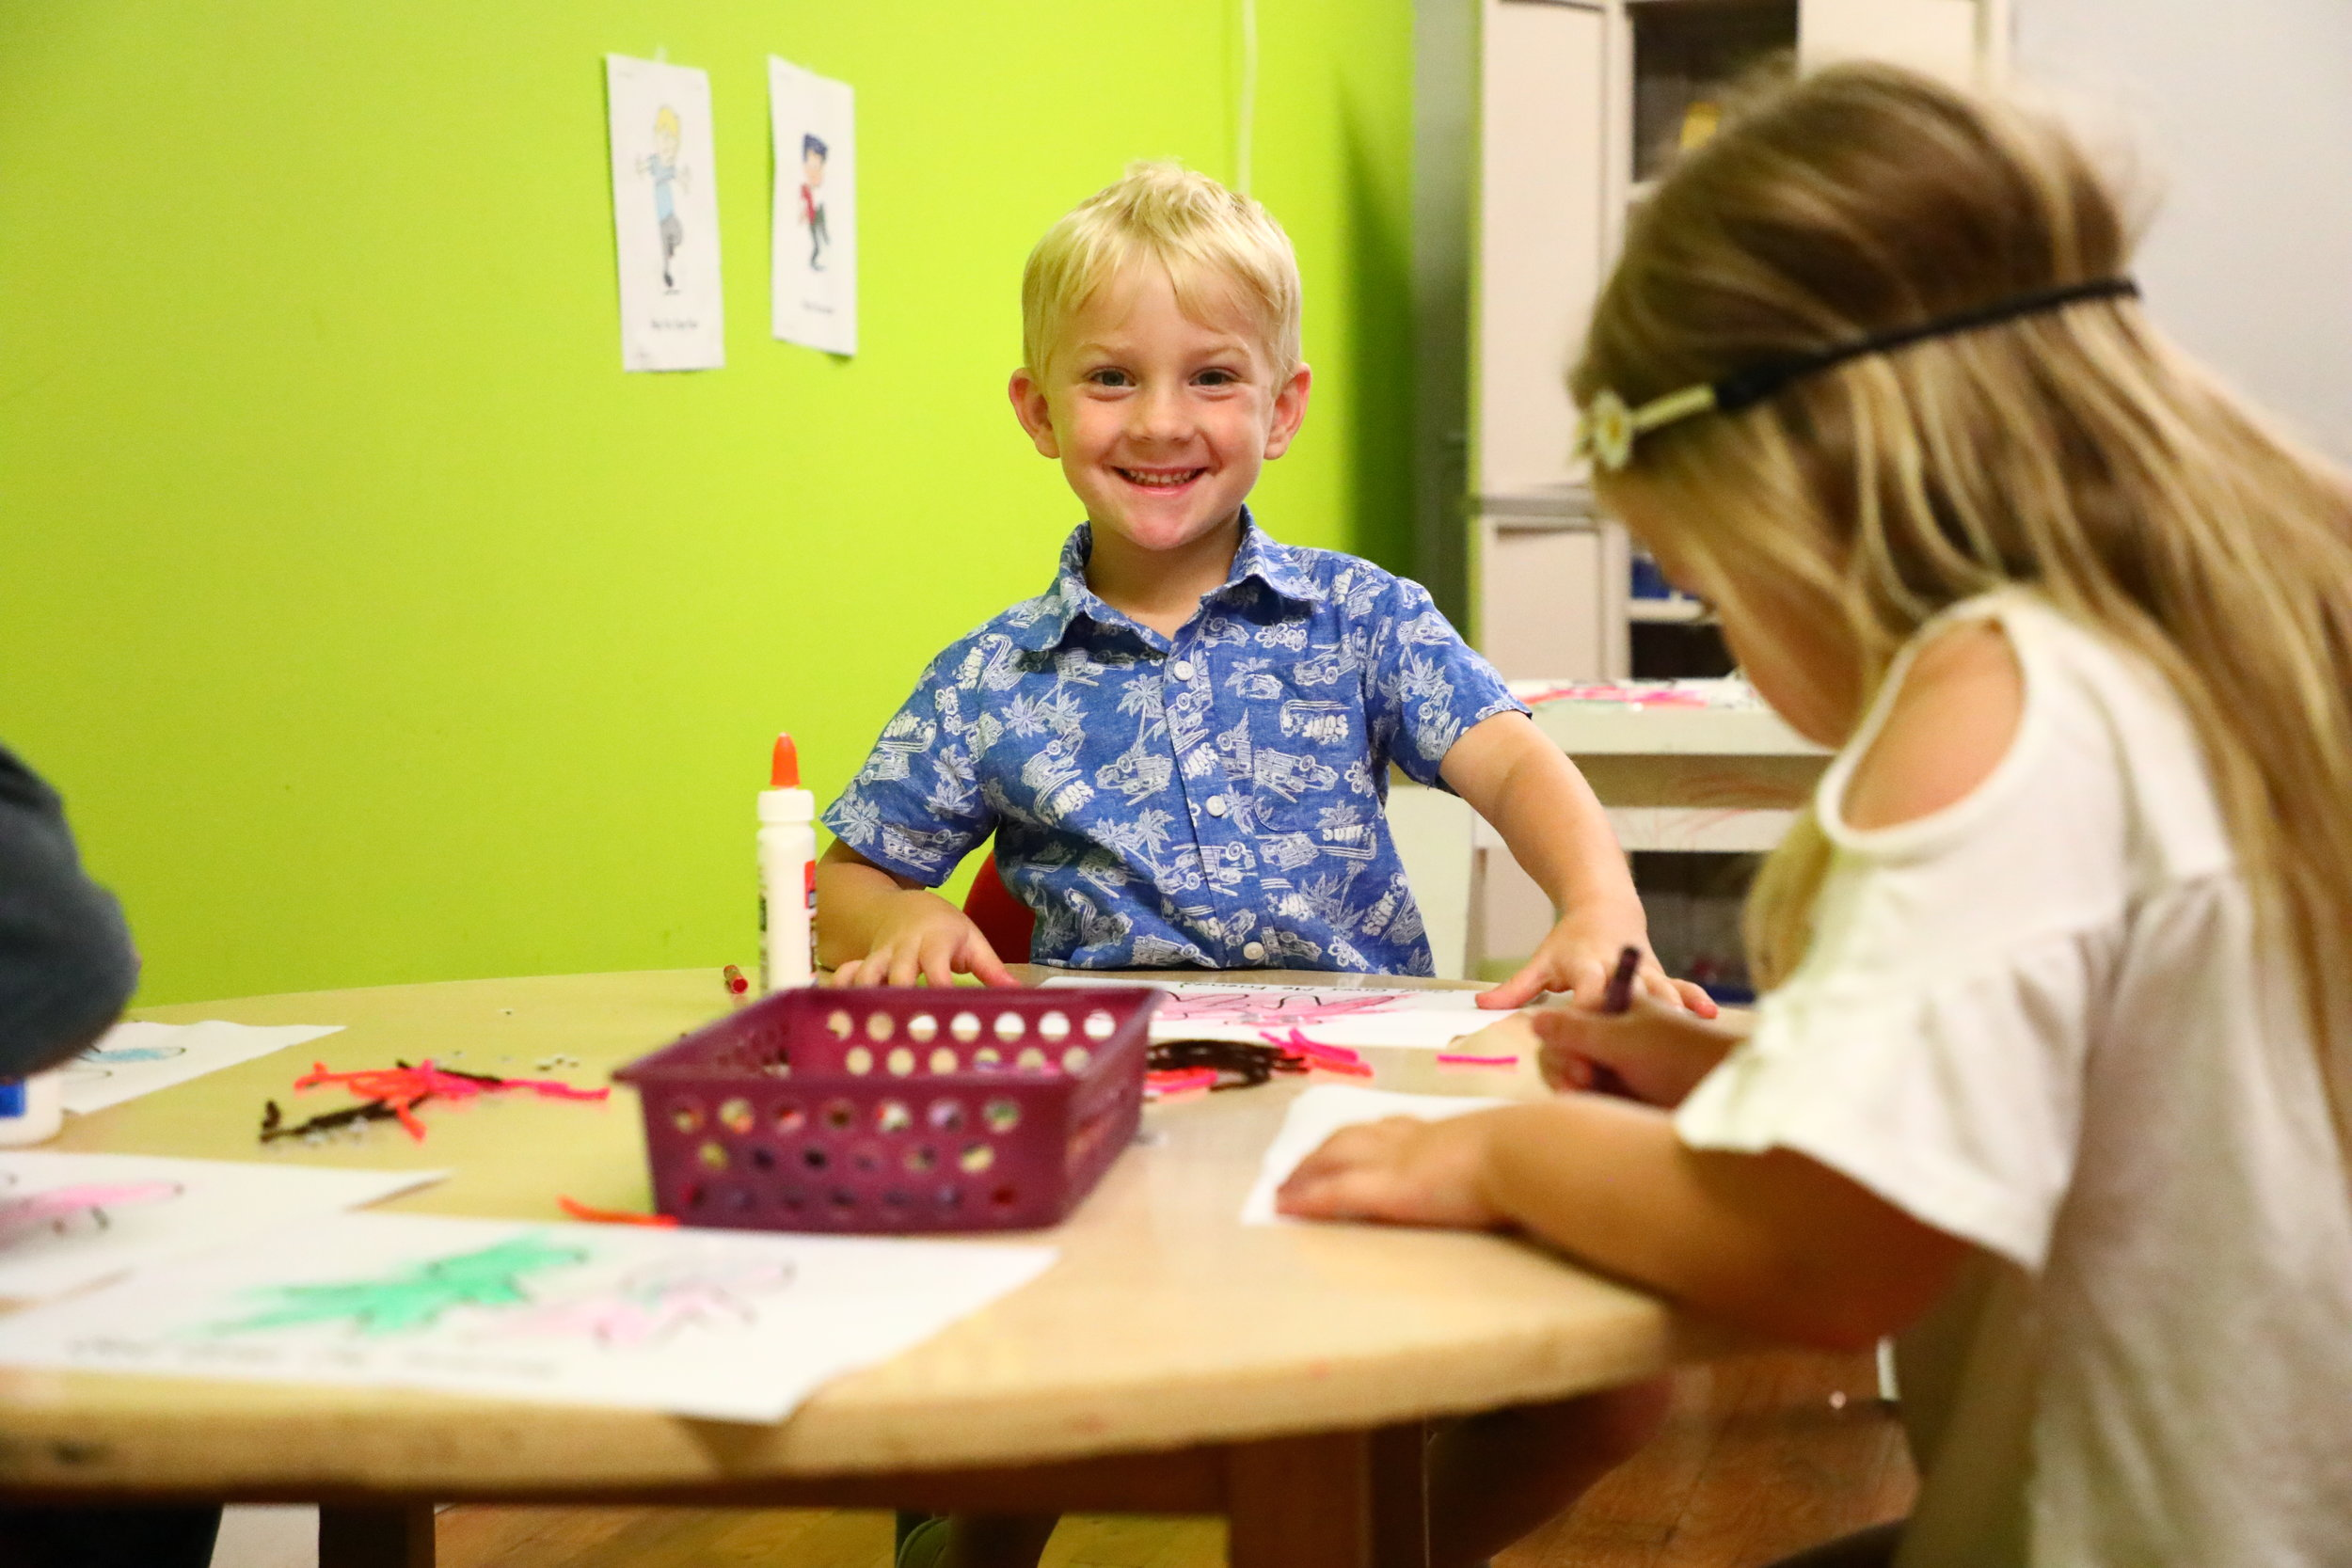 KidsLife Ages - We create an environment where your child can experience a structured plan for learning and development that is tailored for their age group.Blue Room - 6 weeks - 1 Year OldPurple Room - 1 Year Old Room Orange Room - 2 Year Old Room  Green Room - 3 Year Old Room Grey Room - 4 Year Old RoomKids Church - Kindergarten - 5th Grade